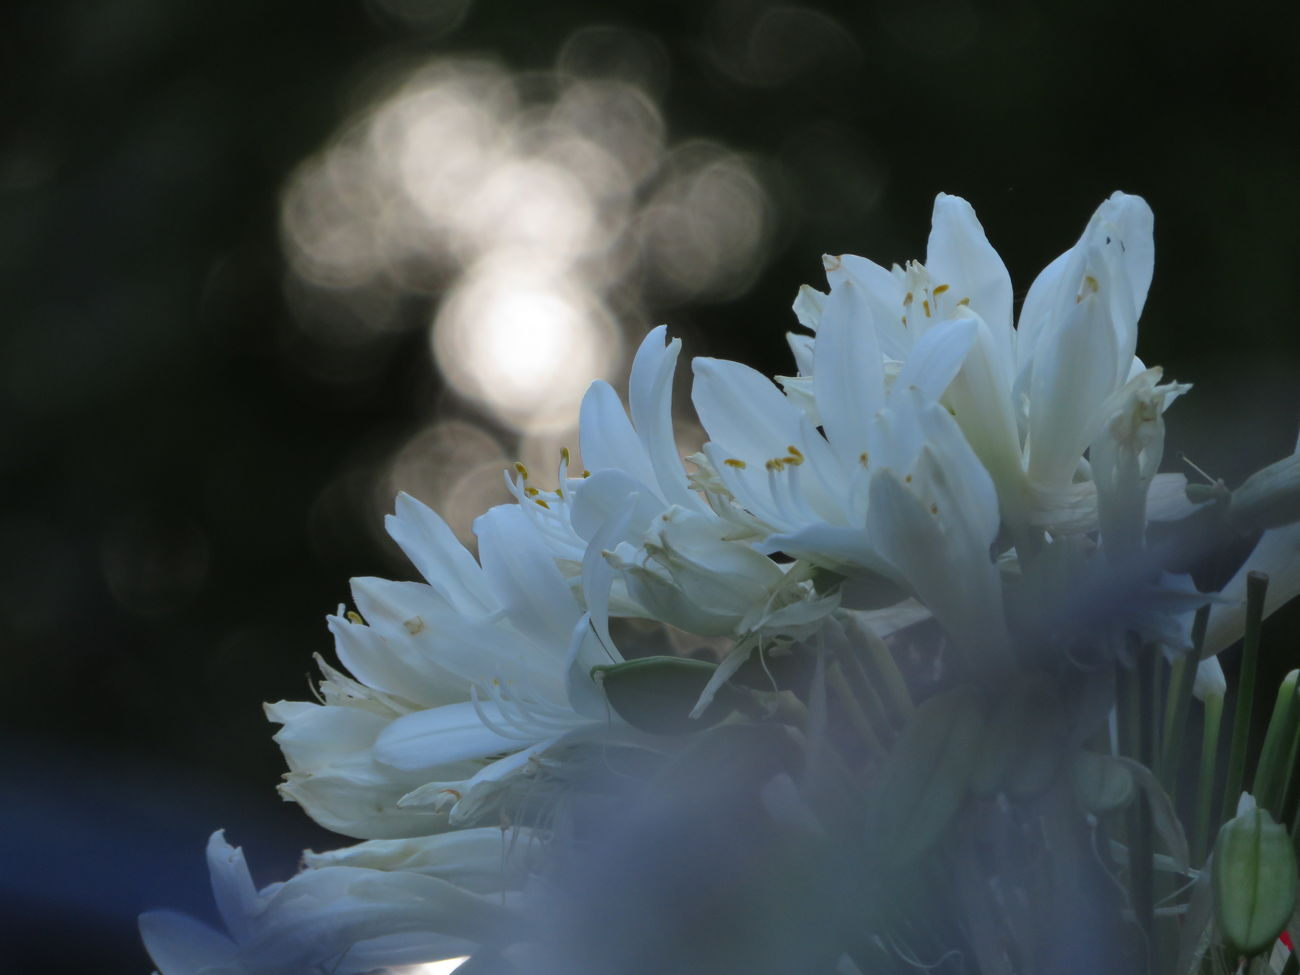 Evening agapanthus 🌄 Agapanthus Flower Nature No Edit No Filter Beauty In Nature White SunsetPlant Sunlight, Shades And Shadows Macro Fragility Flower Collection Close-up Flower Head Freshness Bokeh No People In My Garden